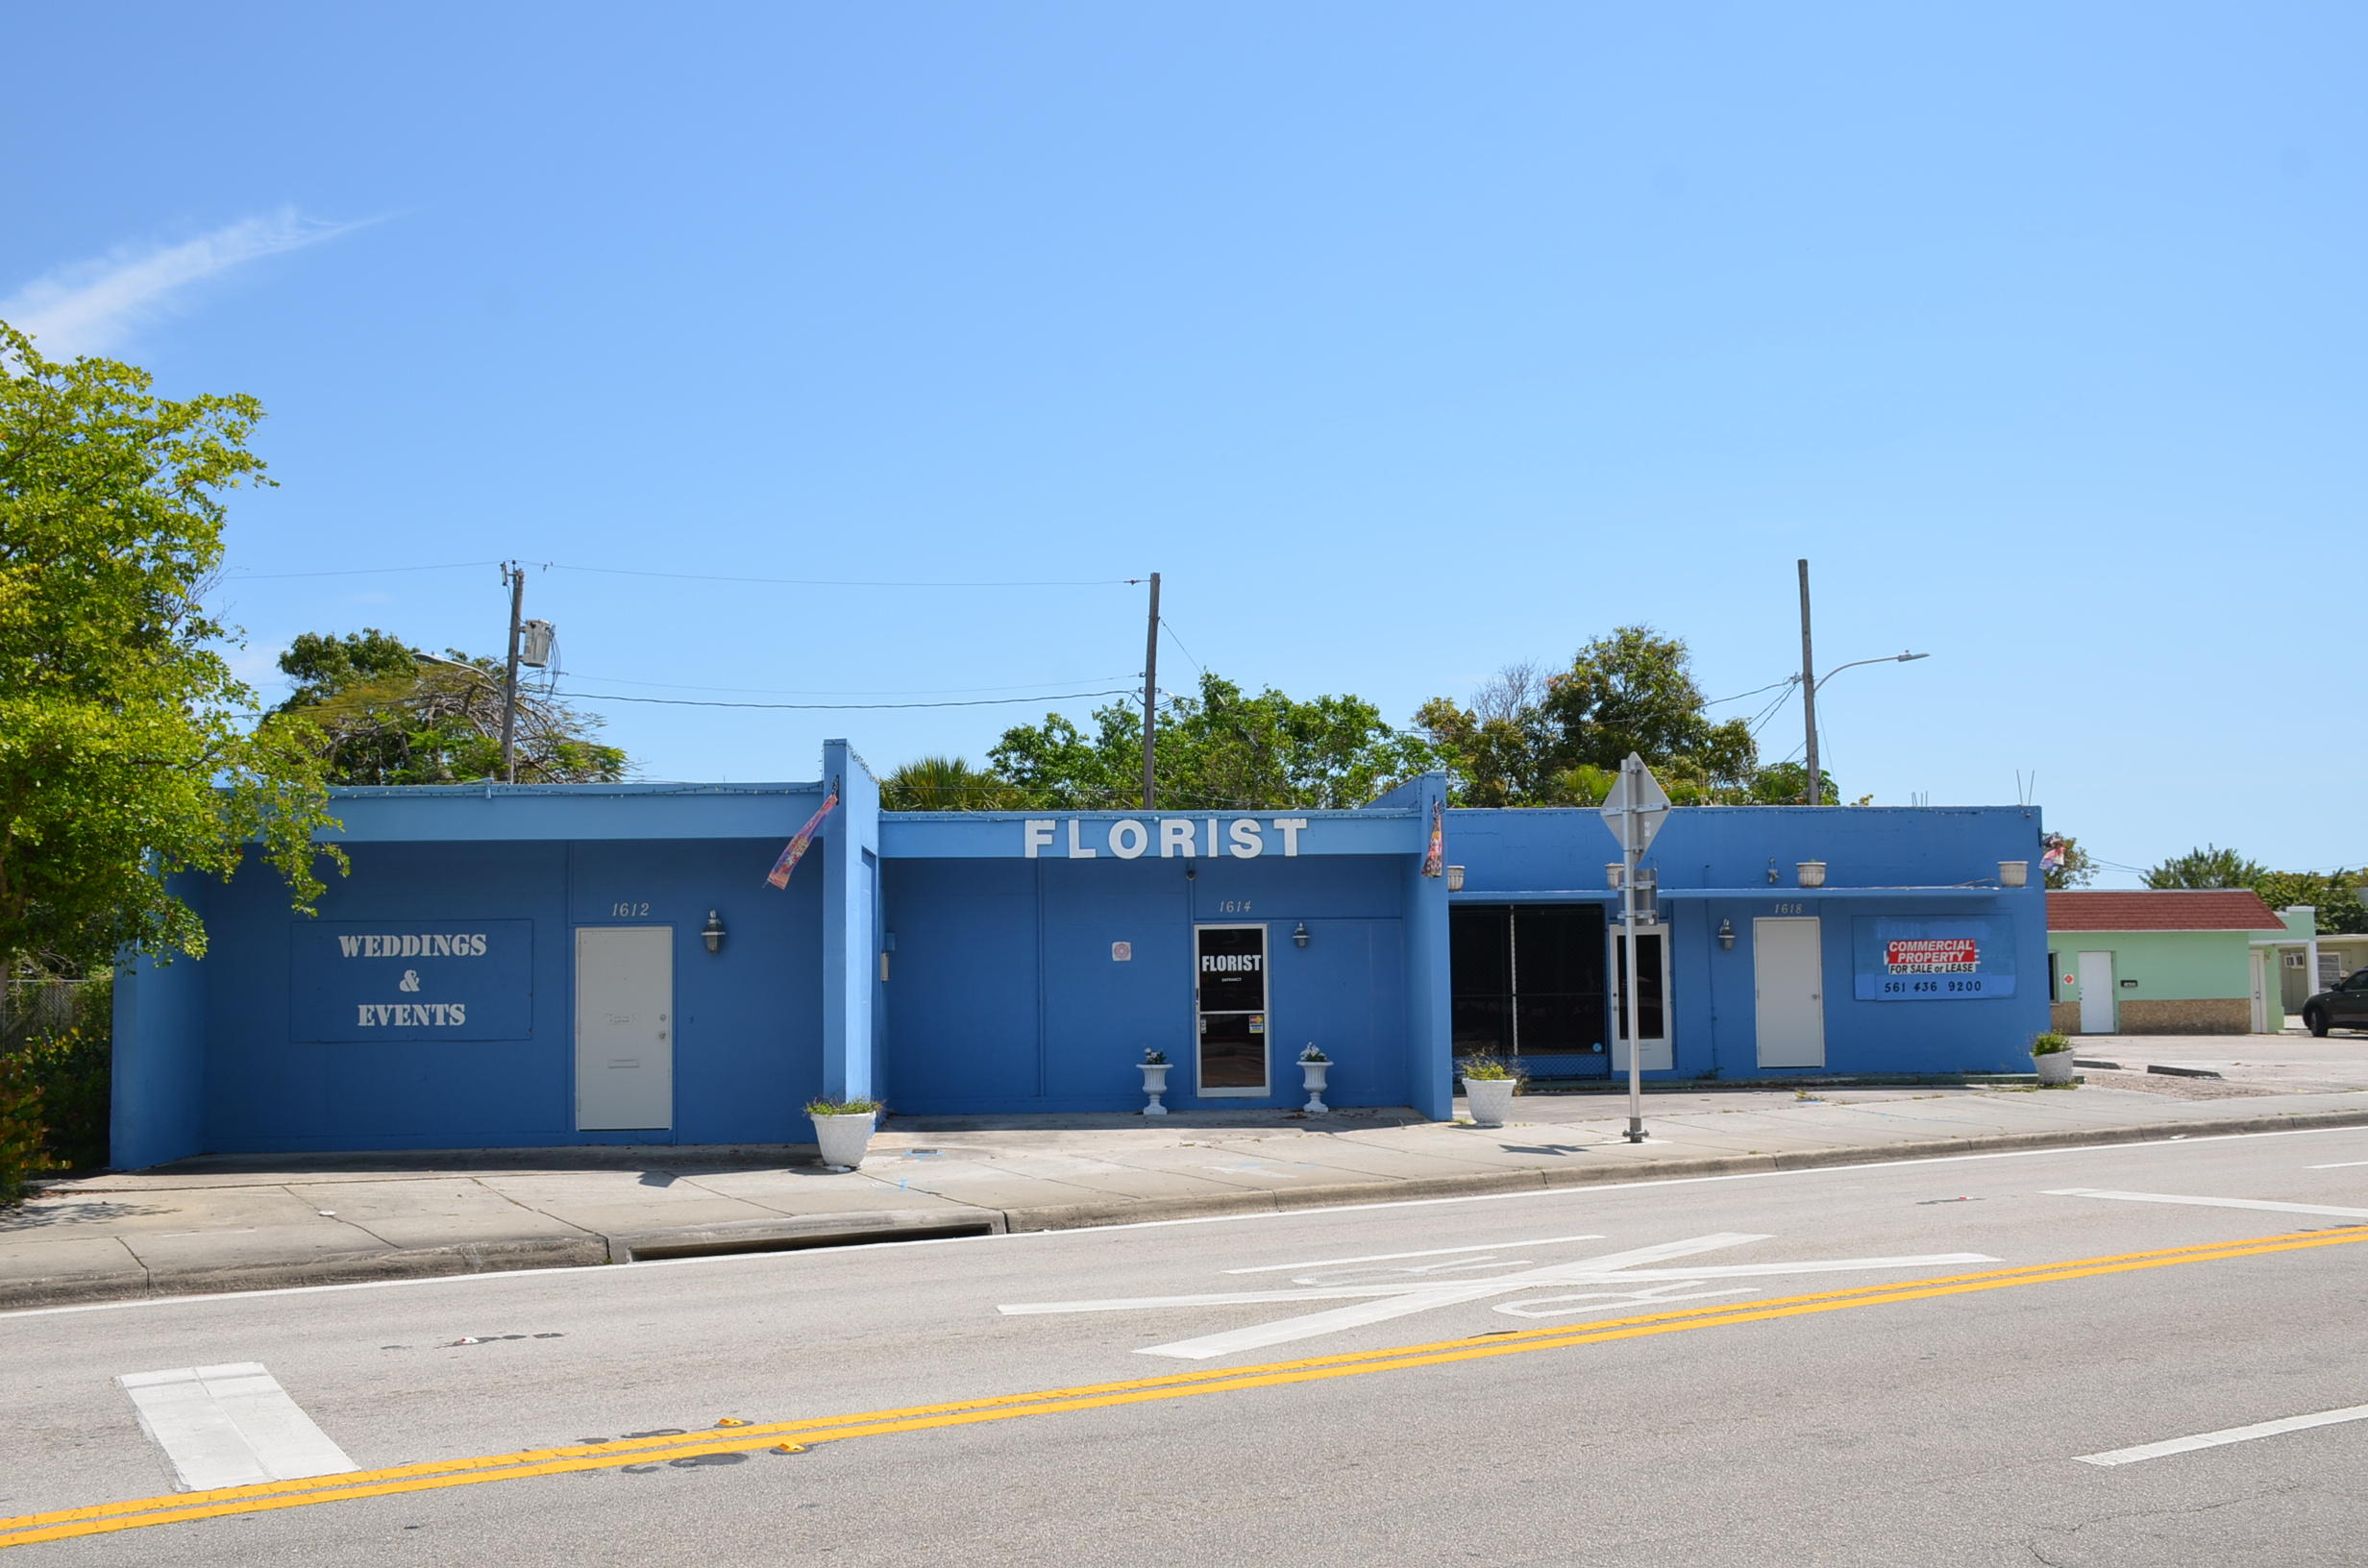 ***REDUCED $55,000***4000 SF FREESTANDING COMMERCIAL BUILDING AVAILABLE ON DIXIE HWY IN LAKE WORTH**OVERSIZED PARKING LOT ALLOWS 18 PARKING SPACES (PARKING AT COMMERCIAL BUILDINGS IN LAKE WORTH IS VERY LIMITED)**BUILDING CAN EASILY BE TURNED INTO 4 SEPARATE BAYS, EACH WITH THEIR OWN ENTRANCES AND SEPARATE BATHROOMS**ZONED MIXED USE**LARGE PARKING LOT ALLOWS DEVELOPER TO BUILD A LARGER BUILDING ON SITE